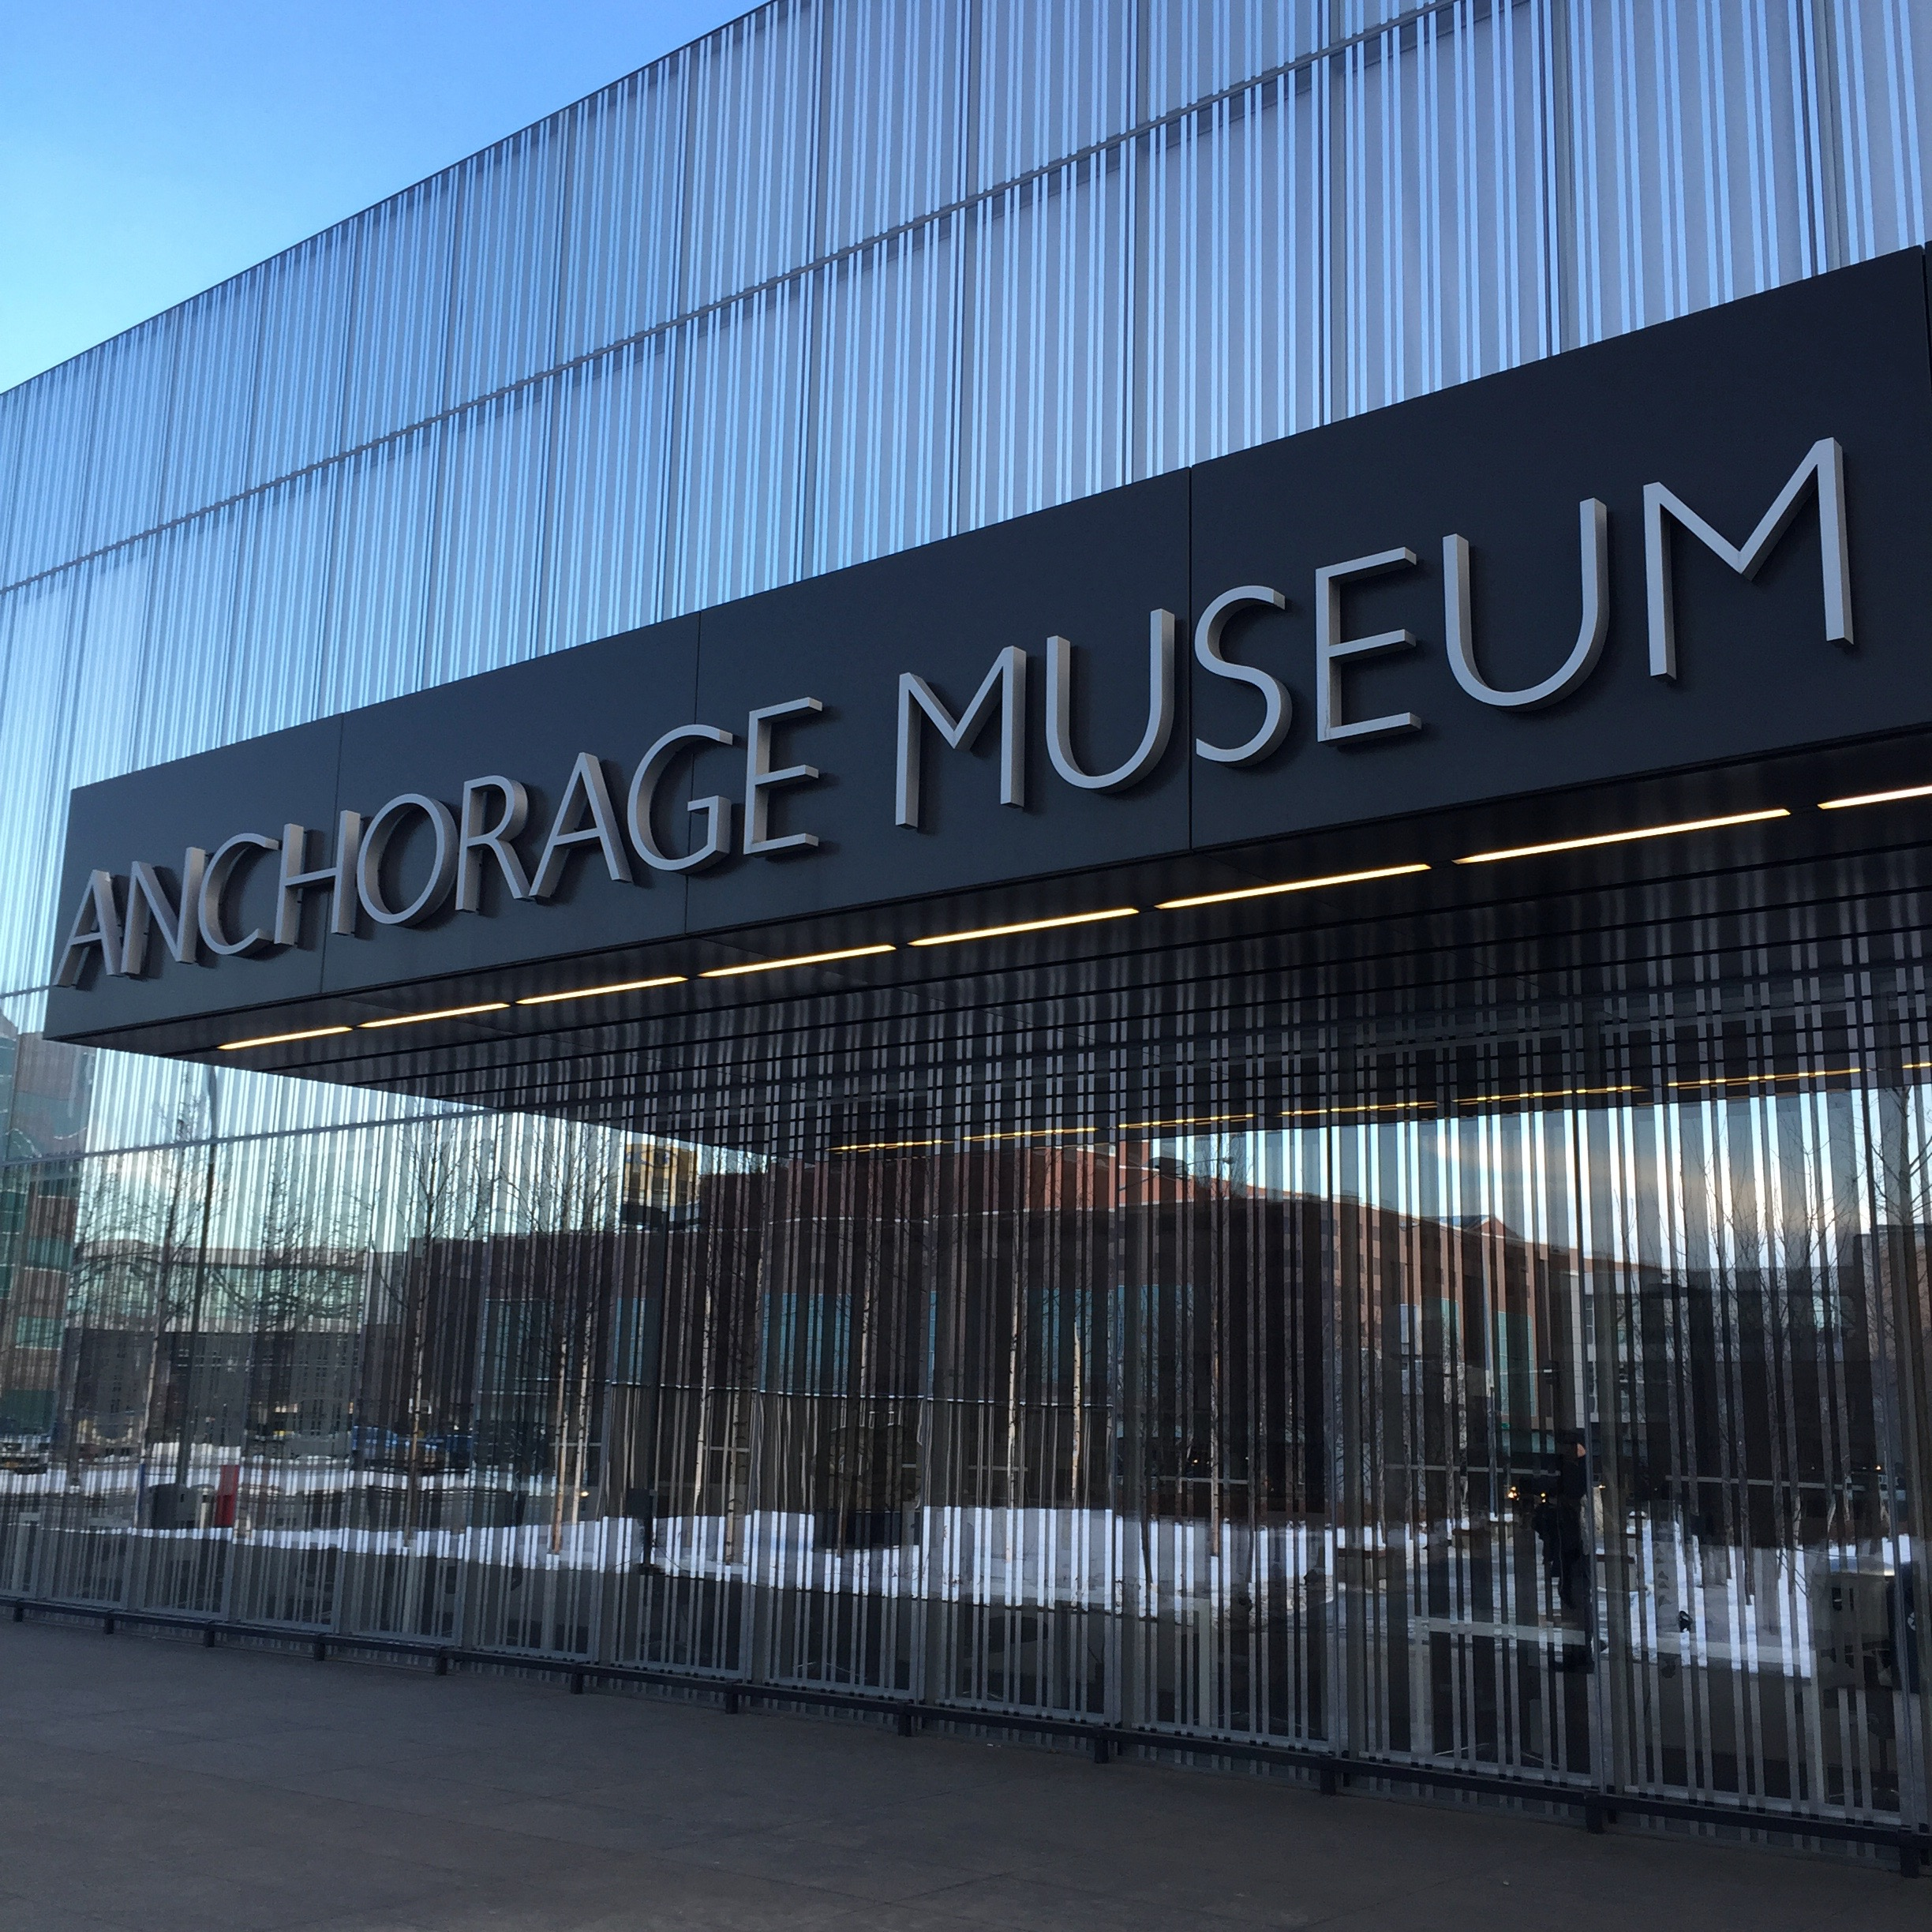 Check out the Anchorage Museum